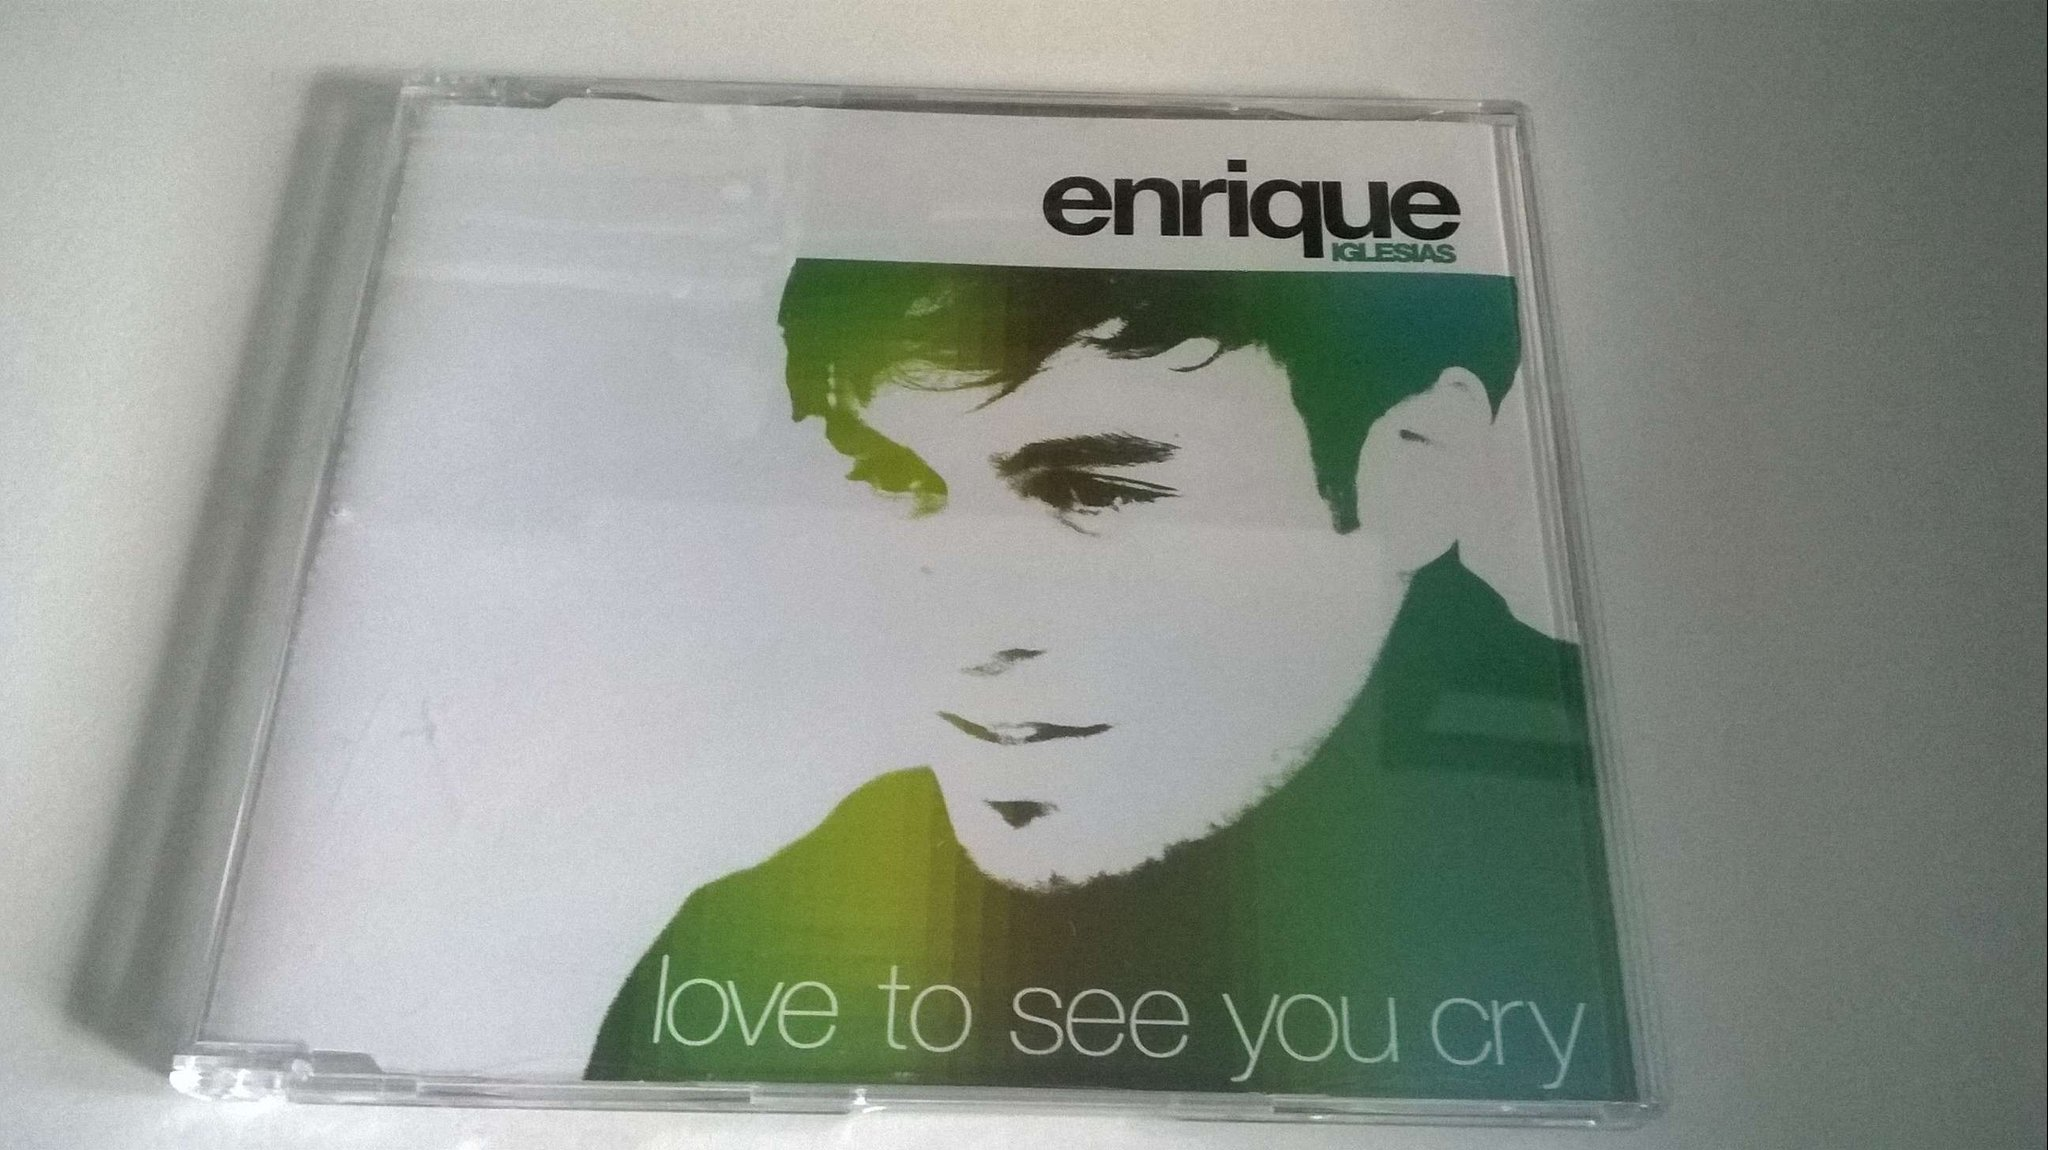 Enrique Iglesias - Love To See You Cry, CD